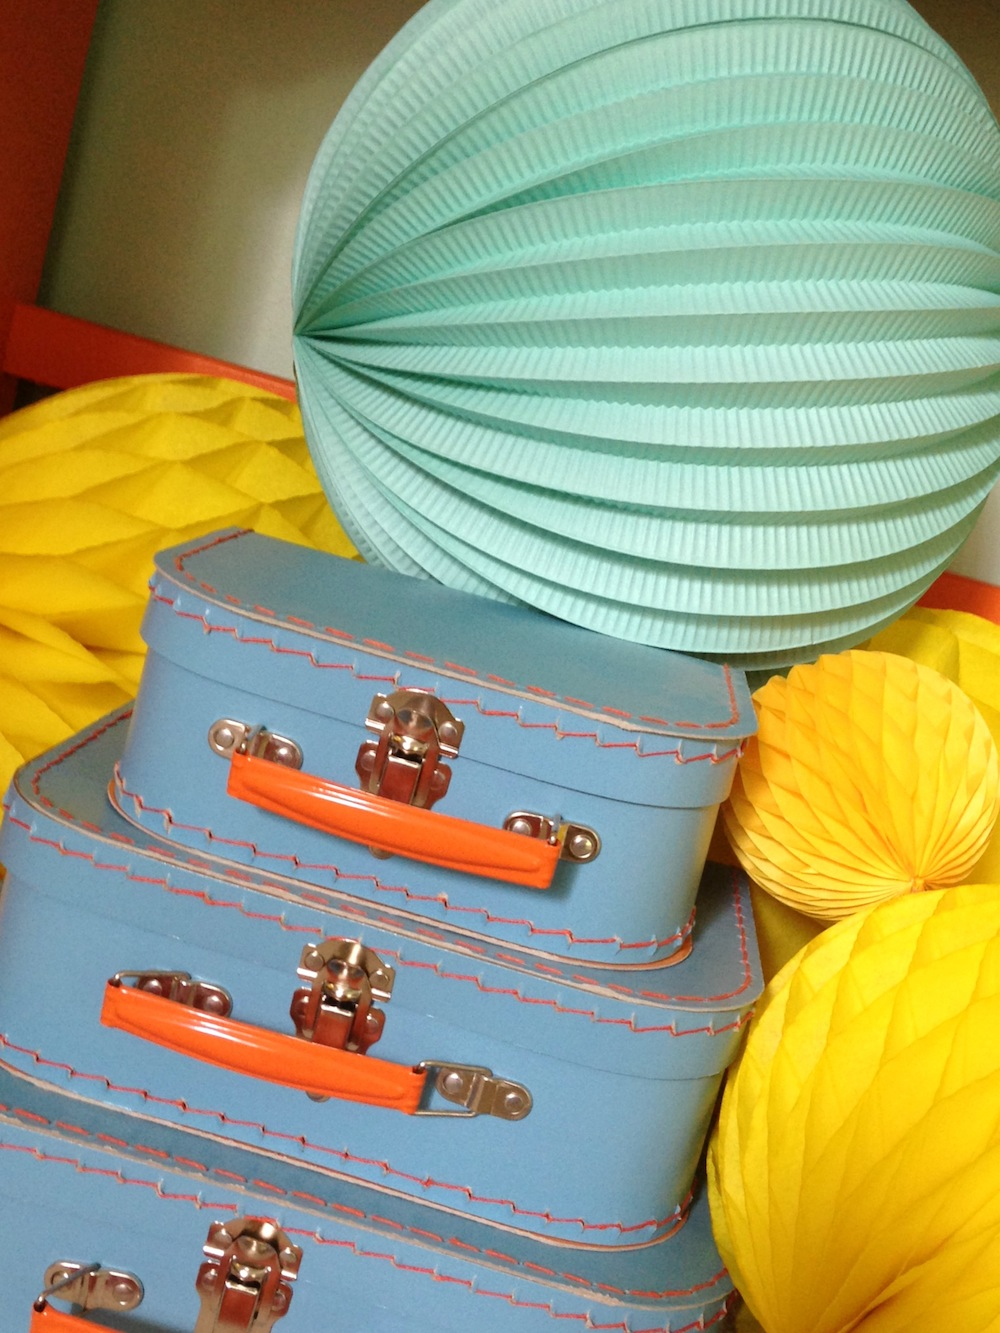 grandparents-day-styled-photo-shoot-suitcases.jpg